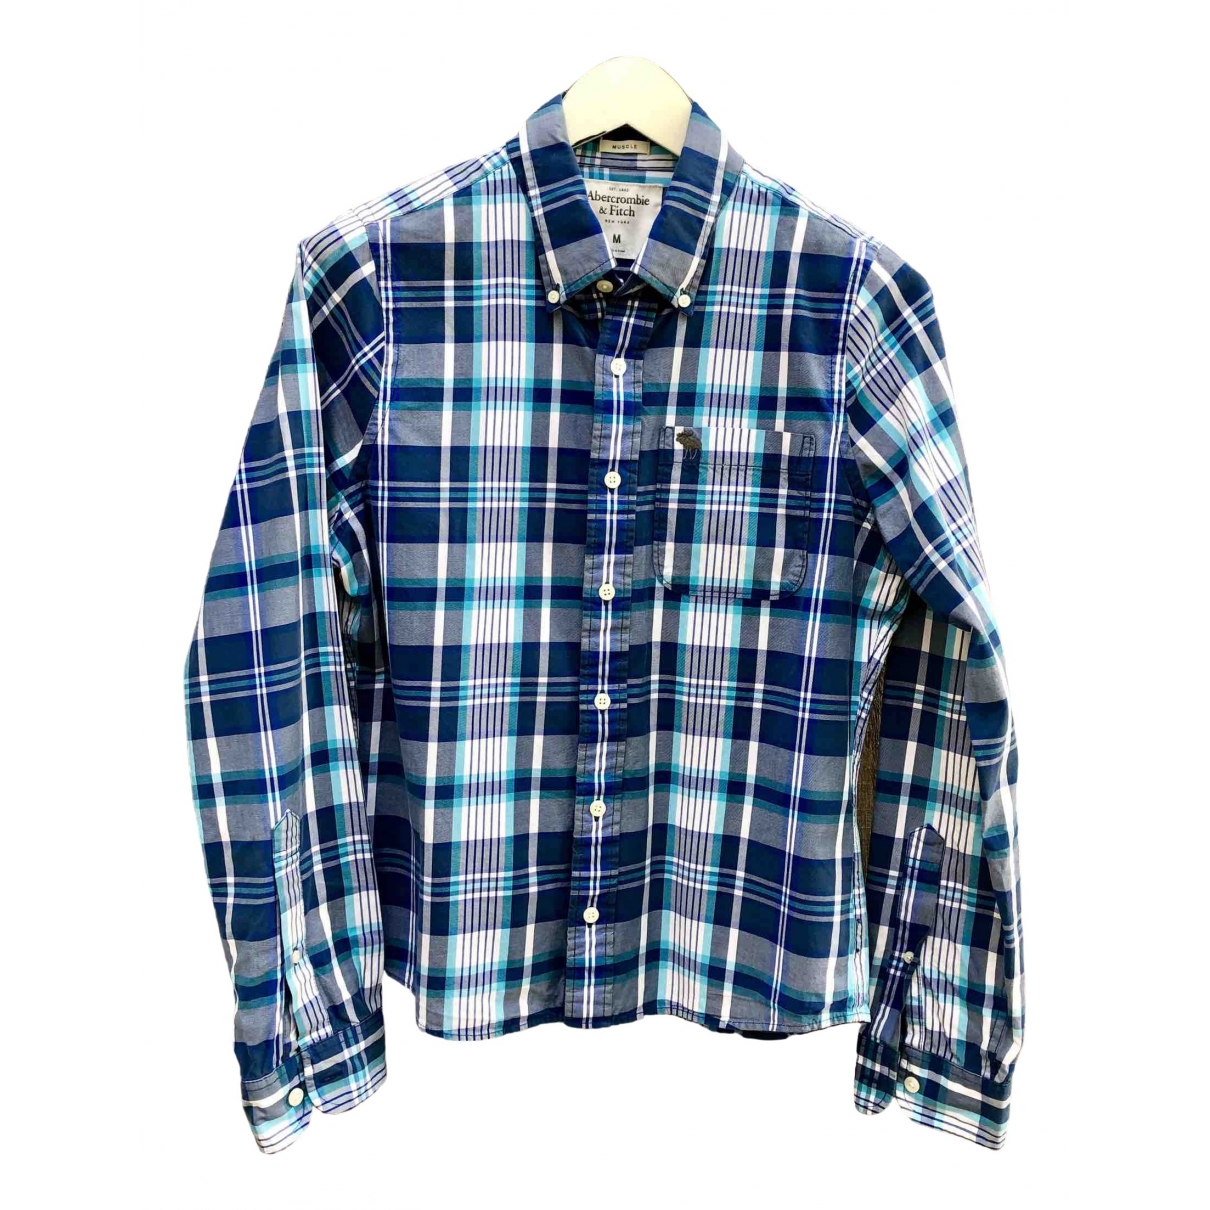 Abercrombie & Fitch \N Blue Cotton Shirts for Men M International